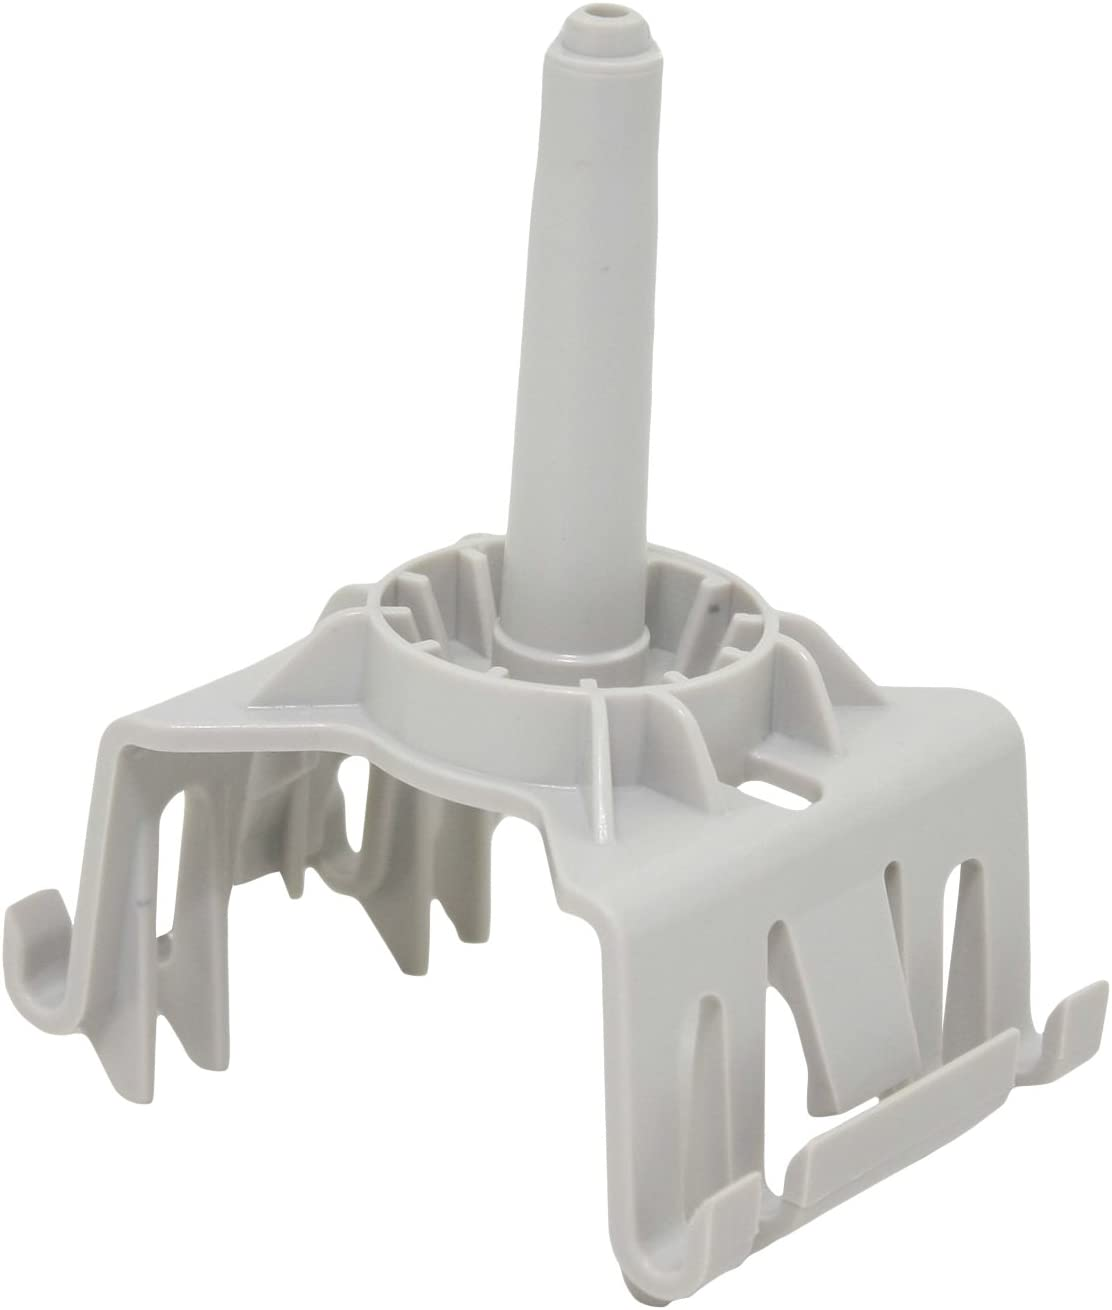 Whirlpool WP8268321 Dishwasher Parts Mount